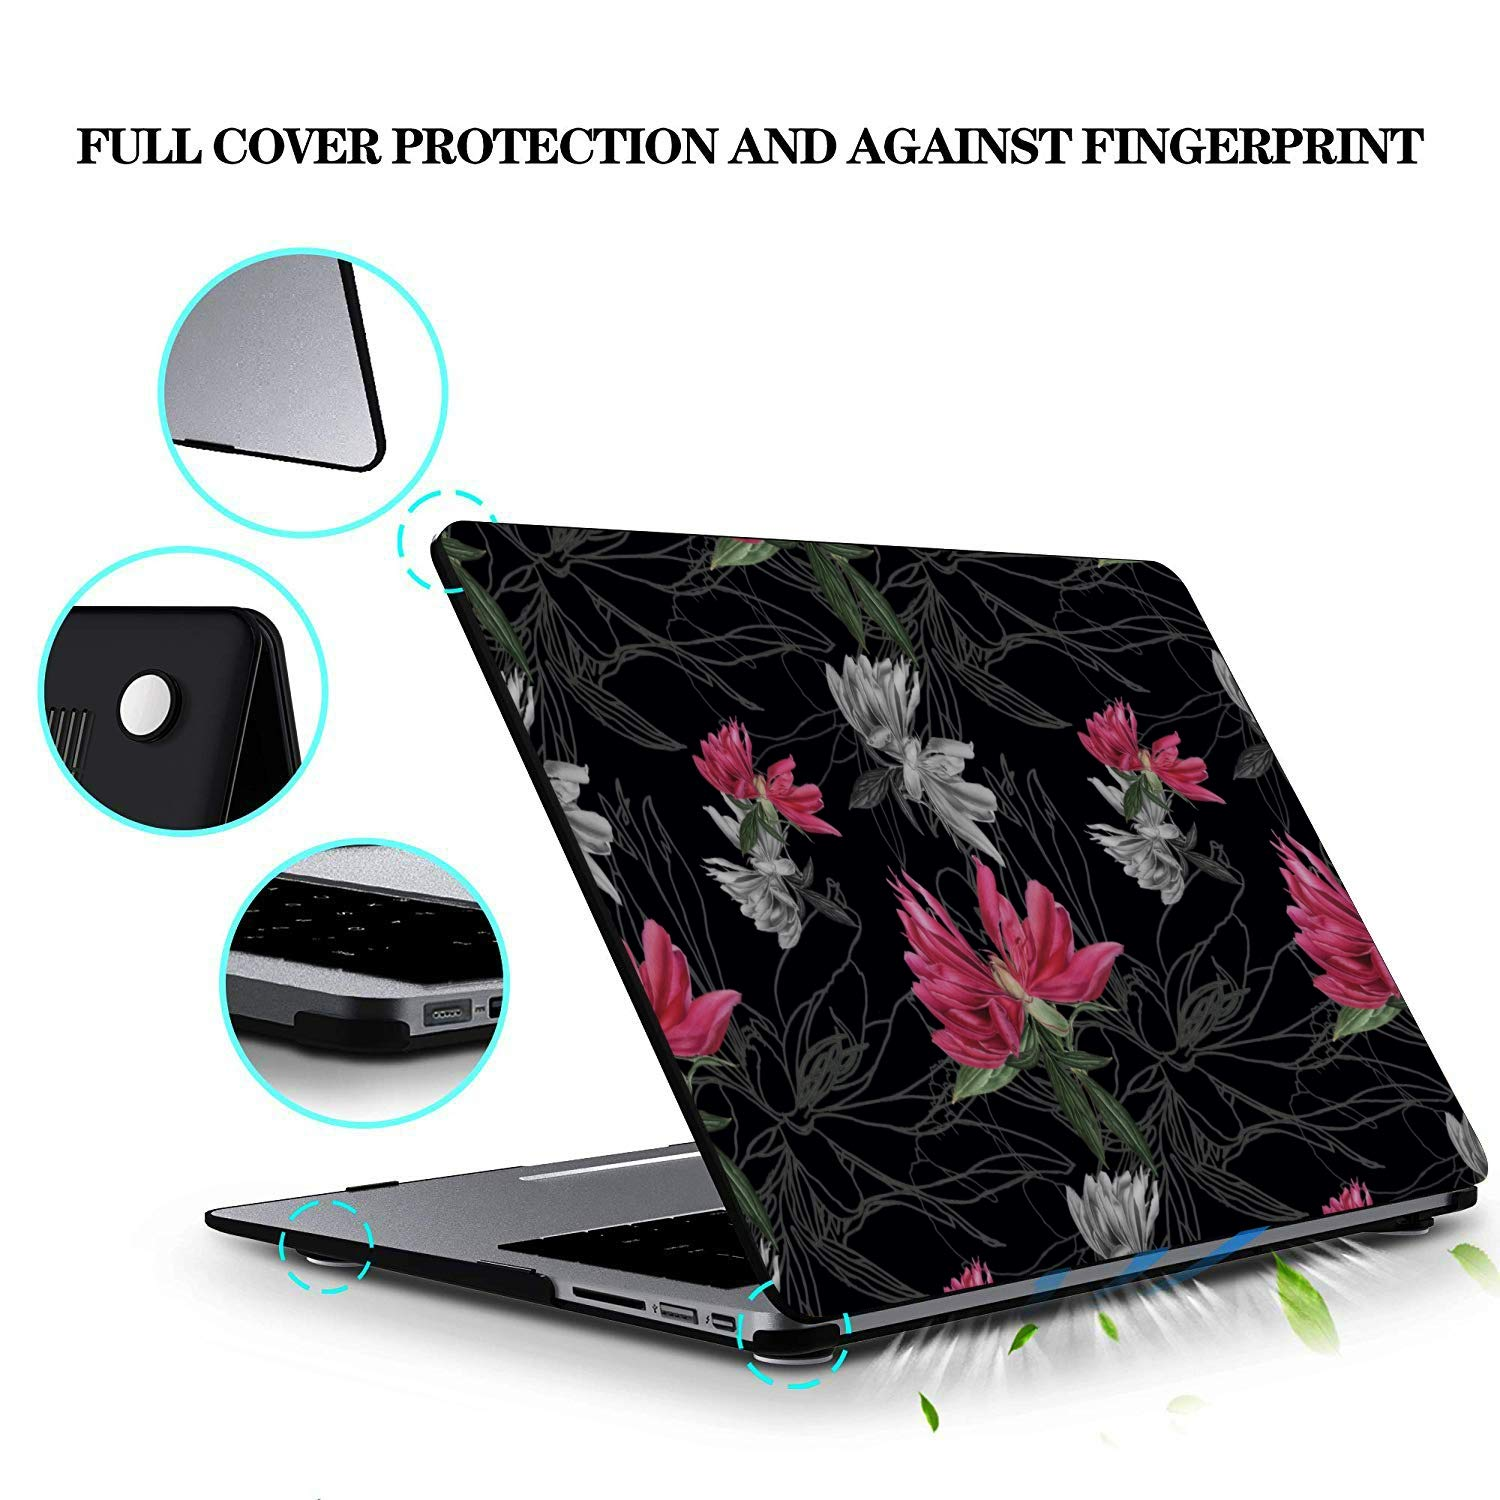 MacBook Pro 2017 Cover Rose Red Retro Romatic Spring Peony Plastic Hard Shell Compatible Mac Air 11 Pro 13 15 MacBook 13 Inch Case Protection for MacBook 2016-2019 Version